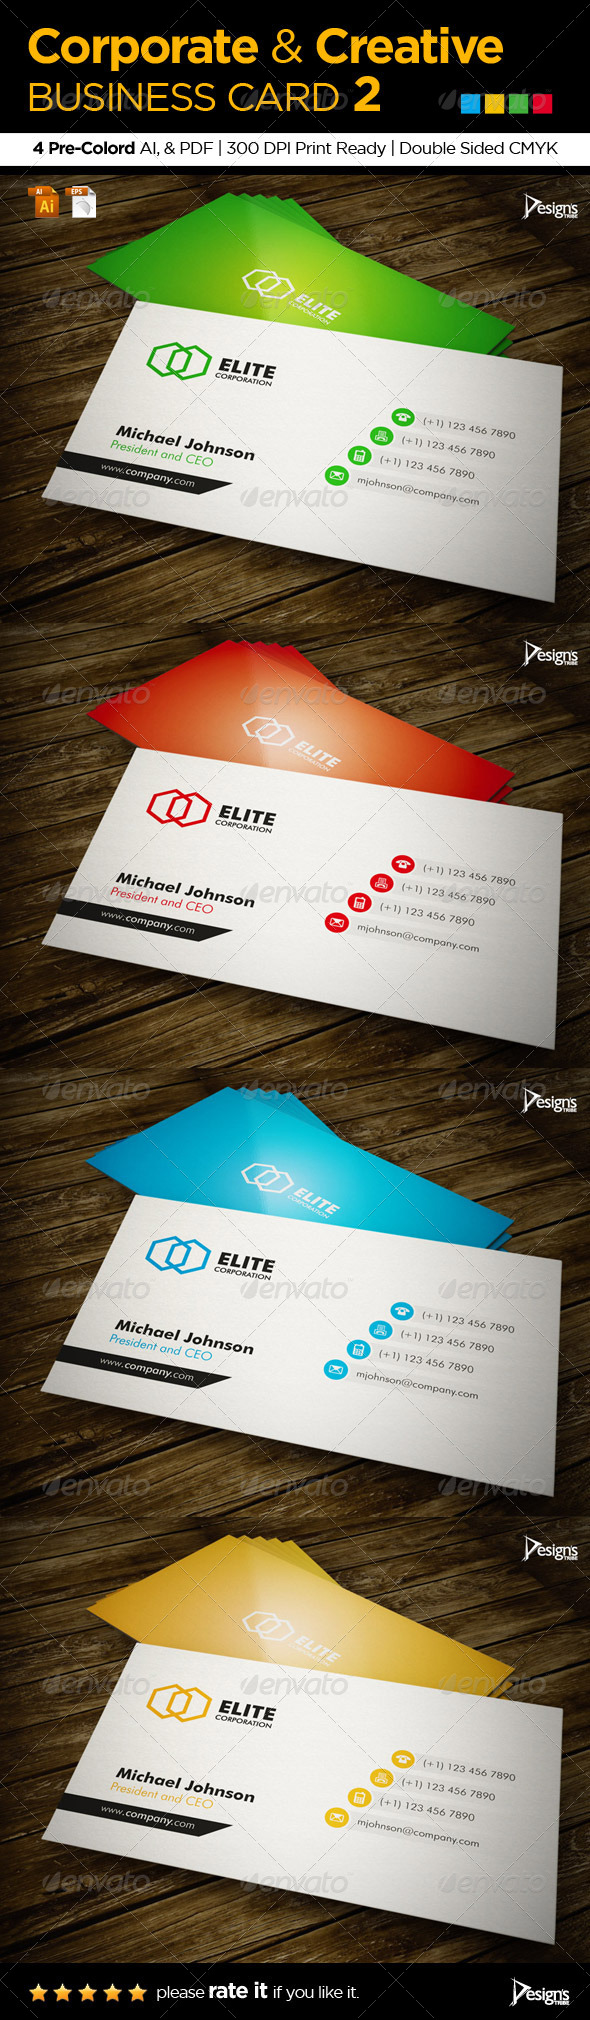 Corporate Creative Business Card 2 - Print Templates